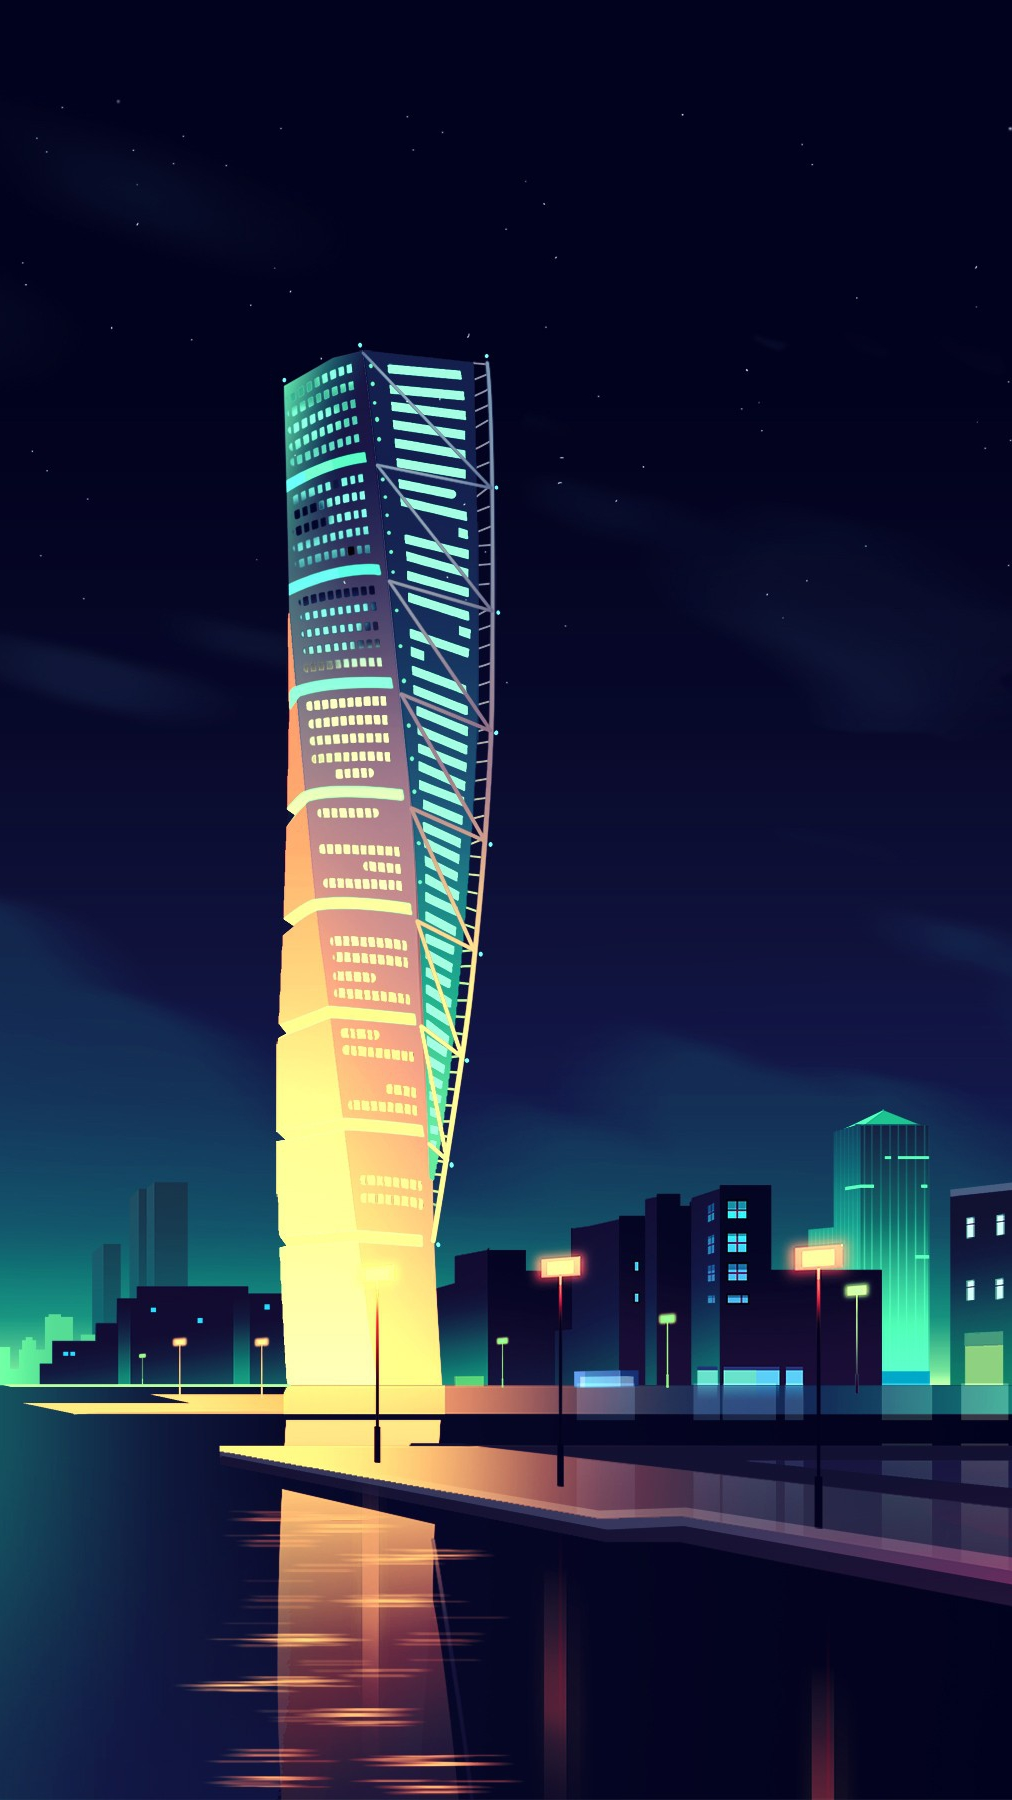 Animated Night City Wallpaper iPhone Wallpaper iphoneswallpapers com